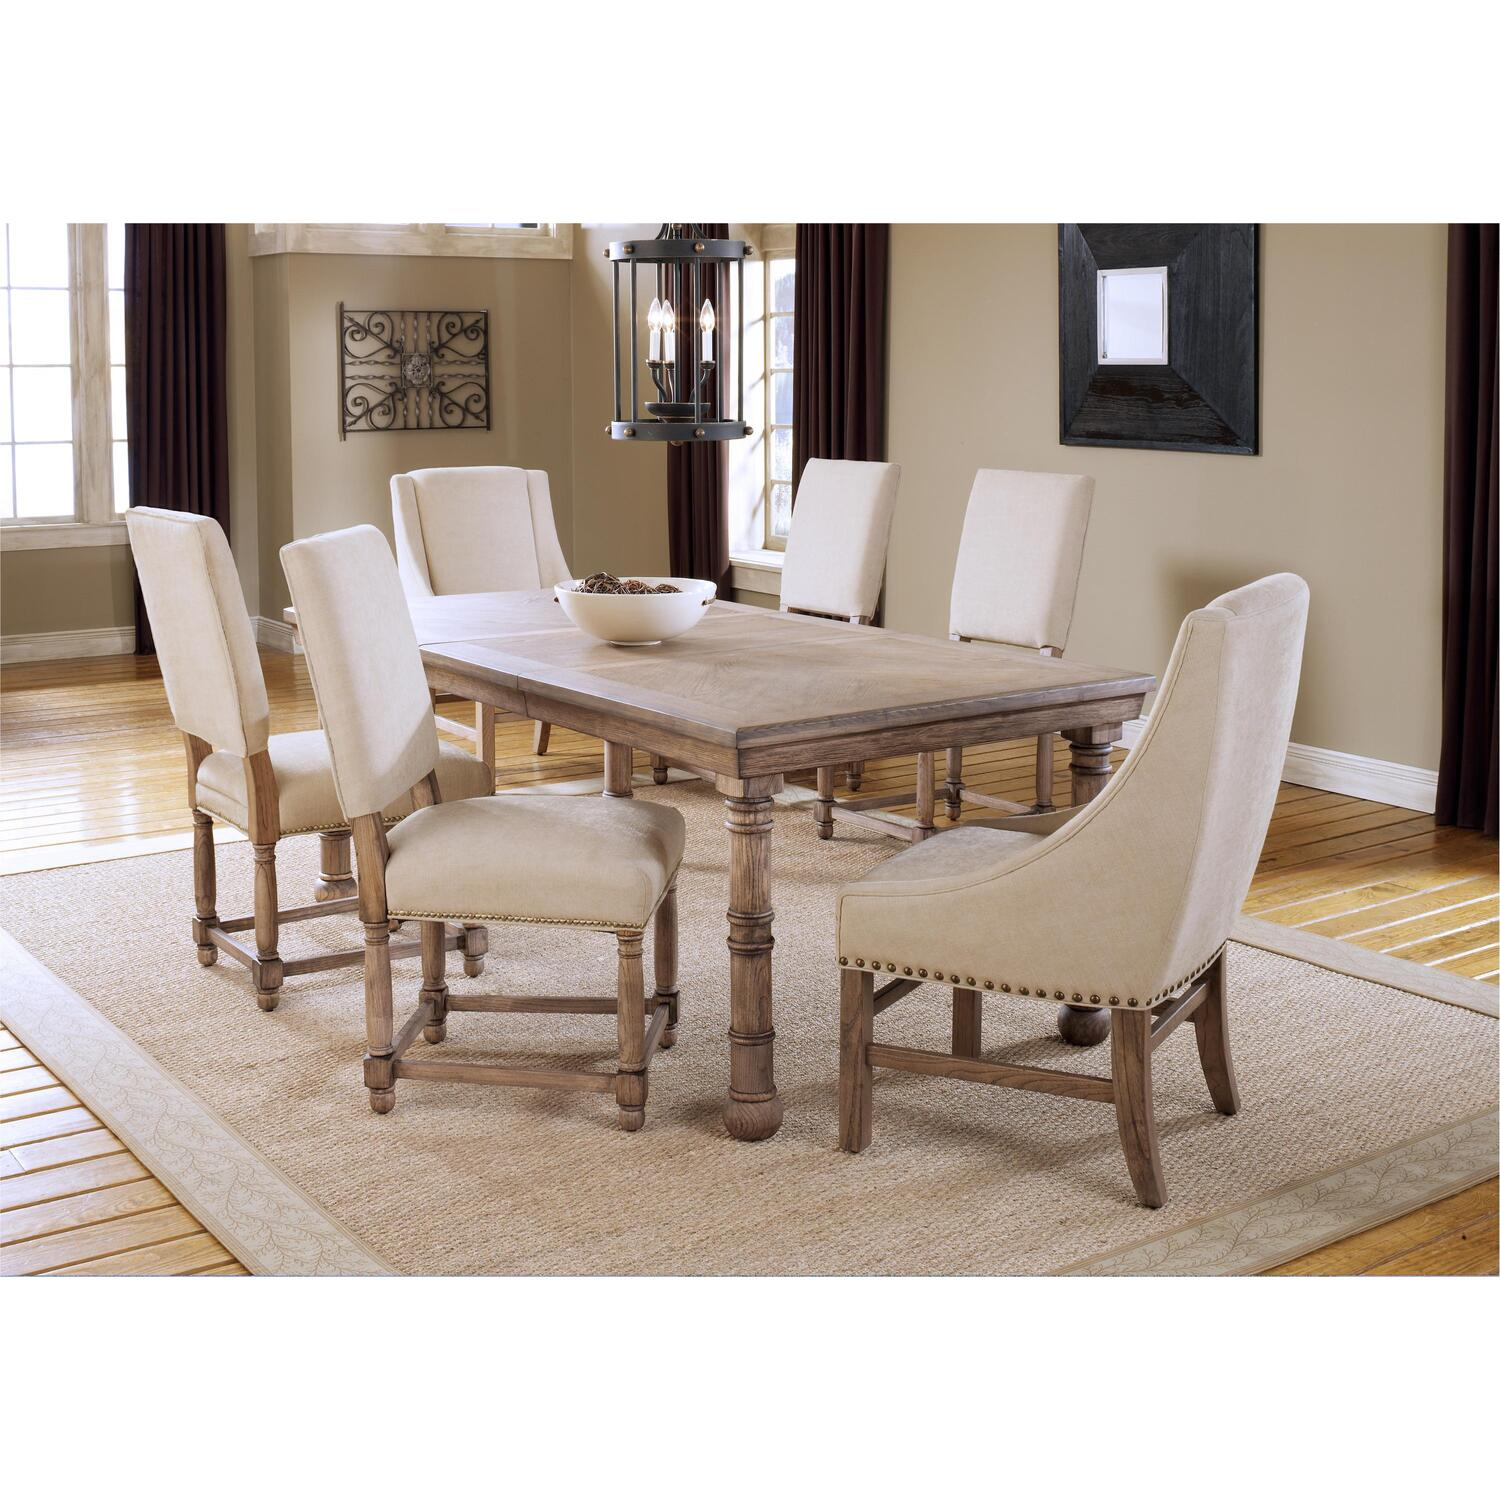 Hillsdale furniture hartland 7 piece dining set table 4 for 4 piece dining table set